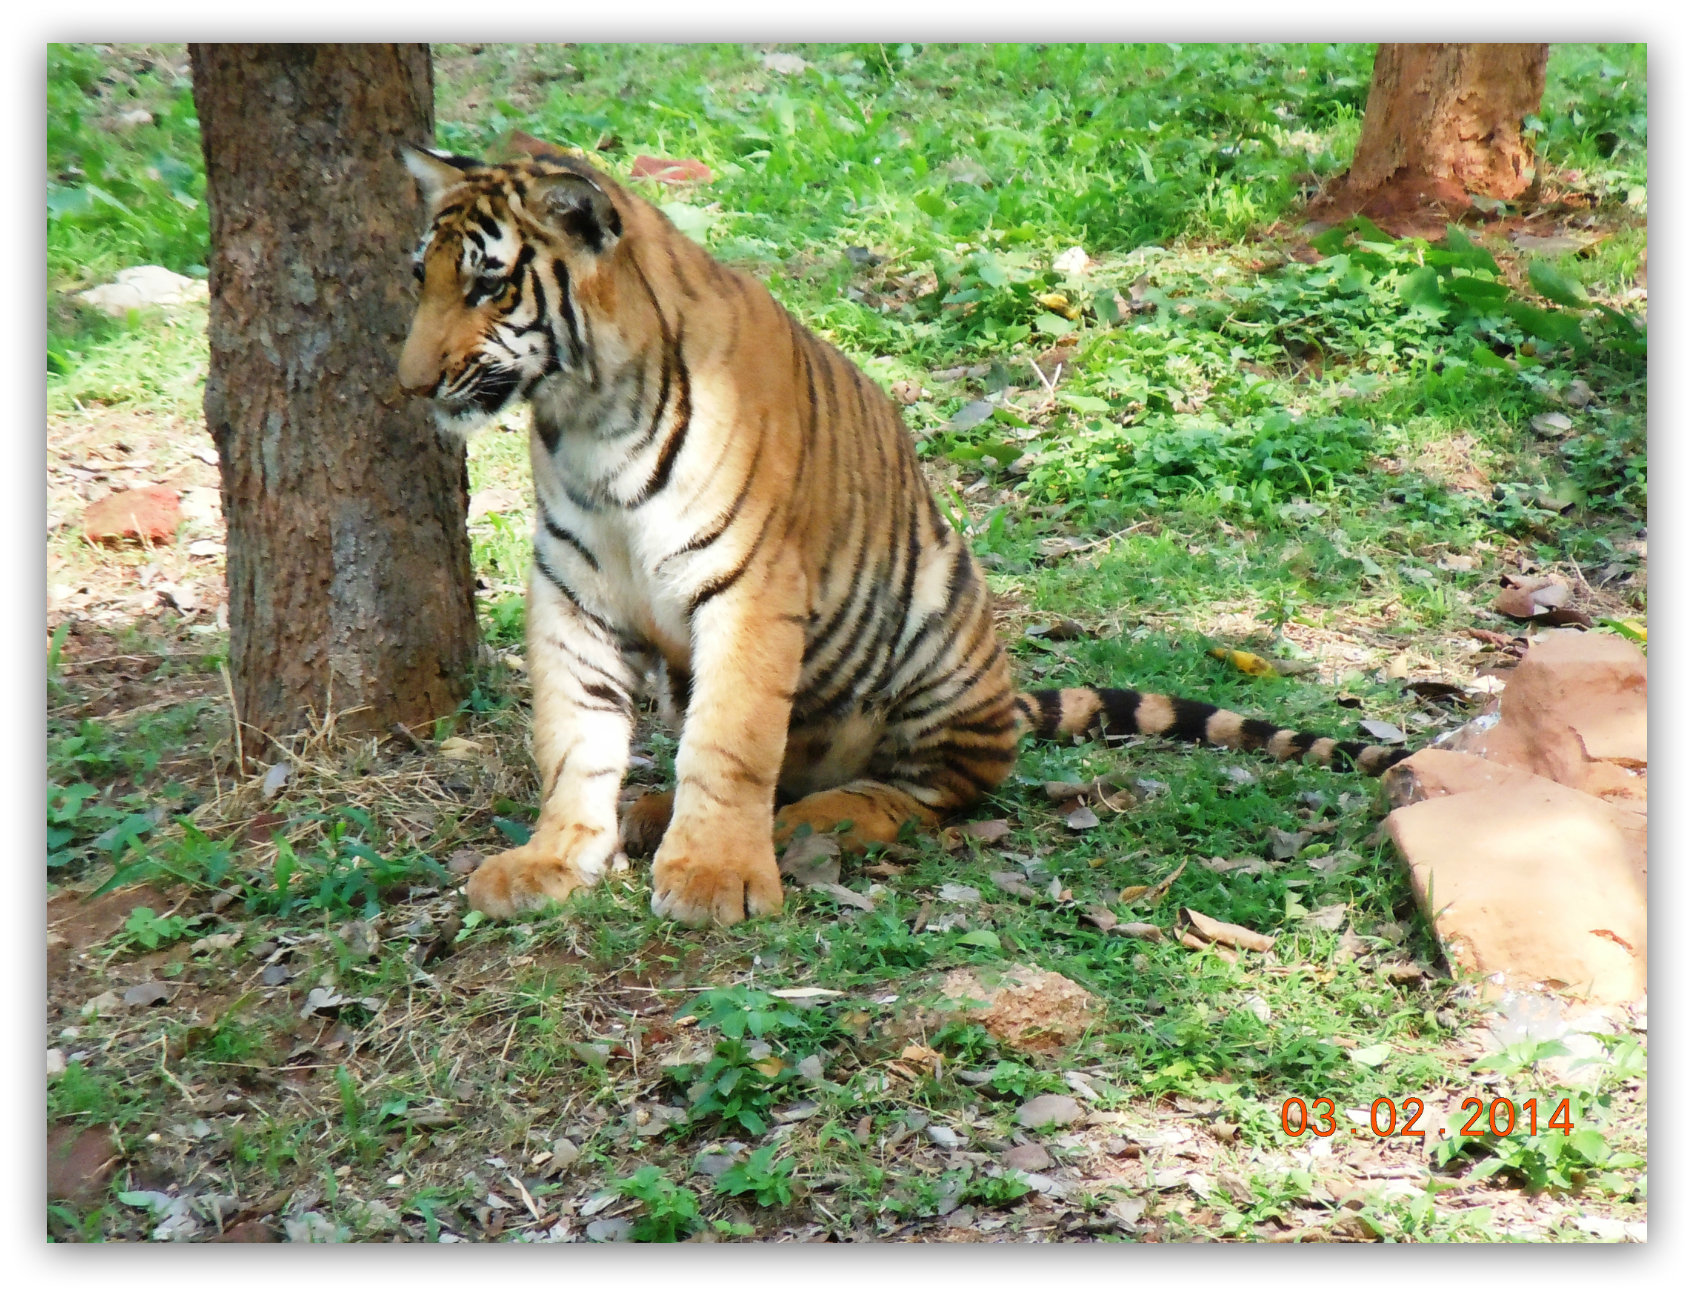 A Tiger Cub at Mysore Zoo